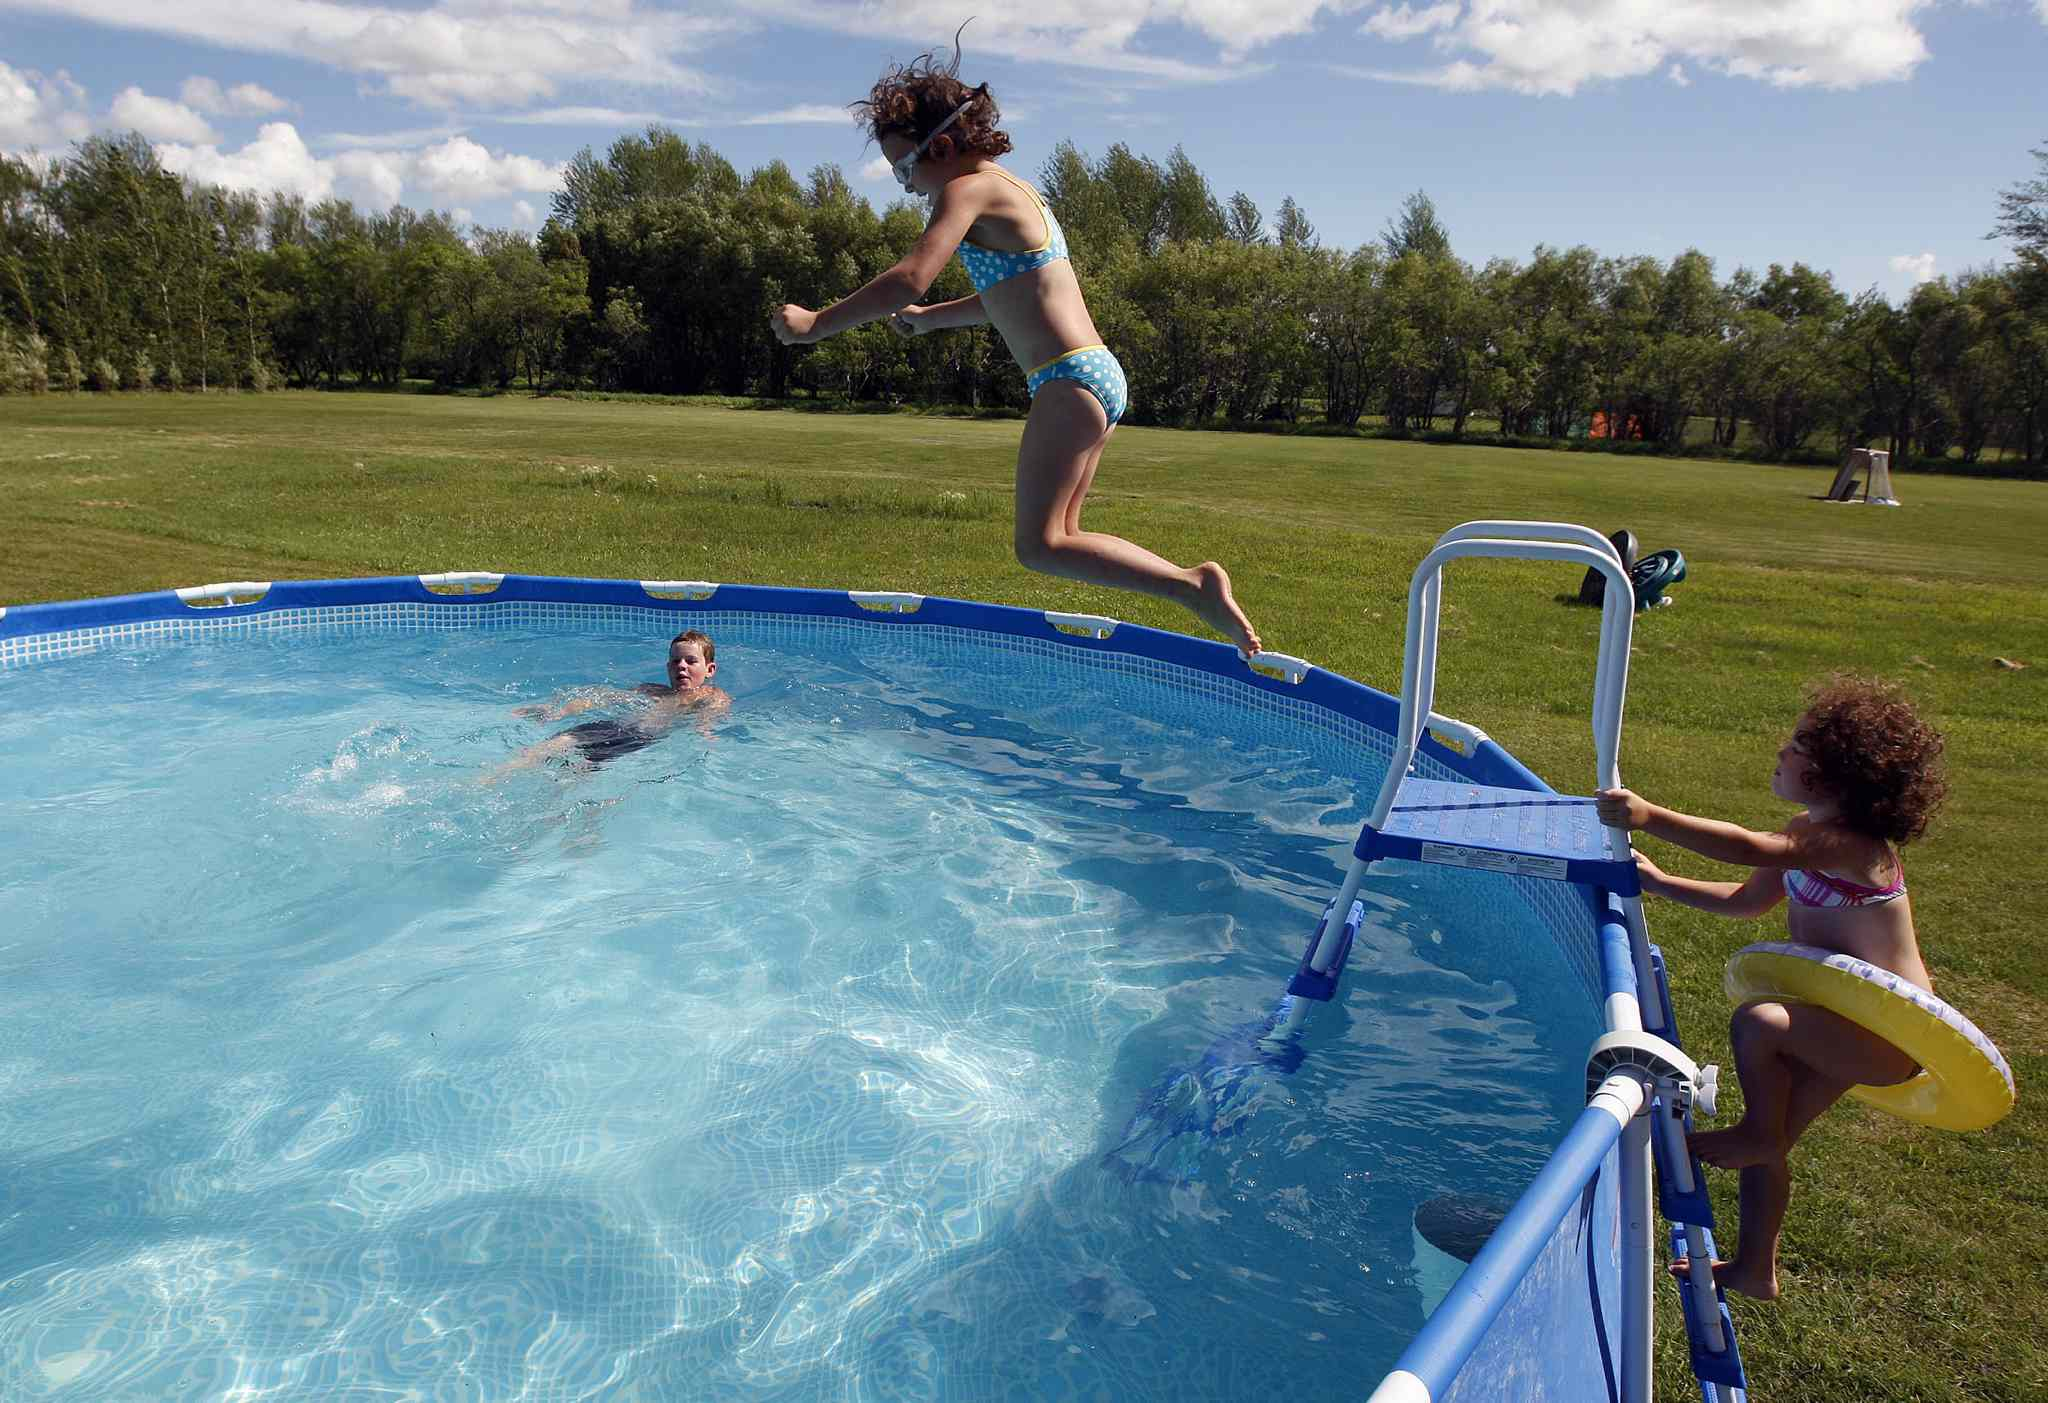 Children playing in the water make noise. If they get quiet, find out why.